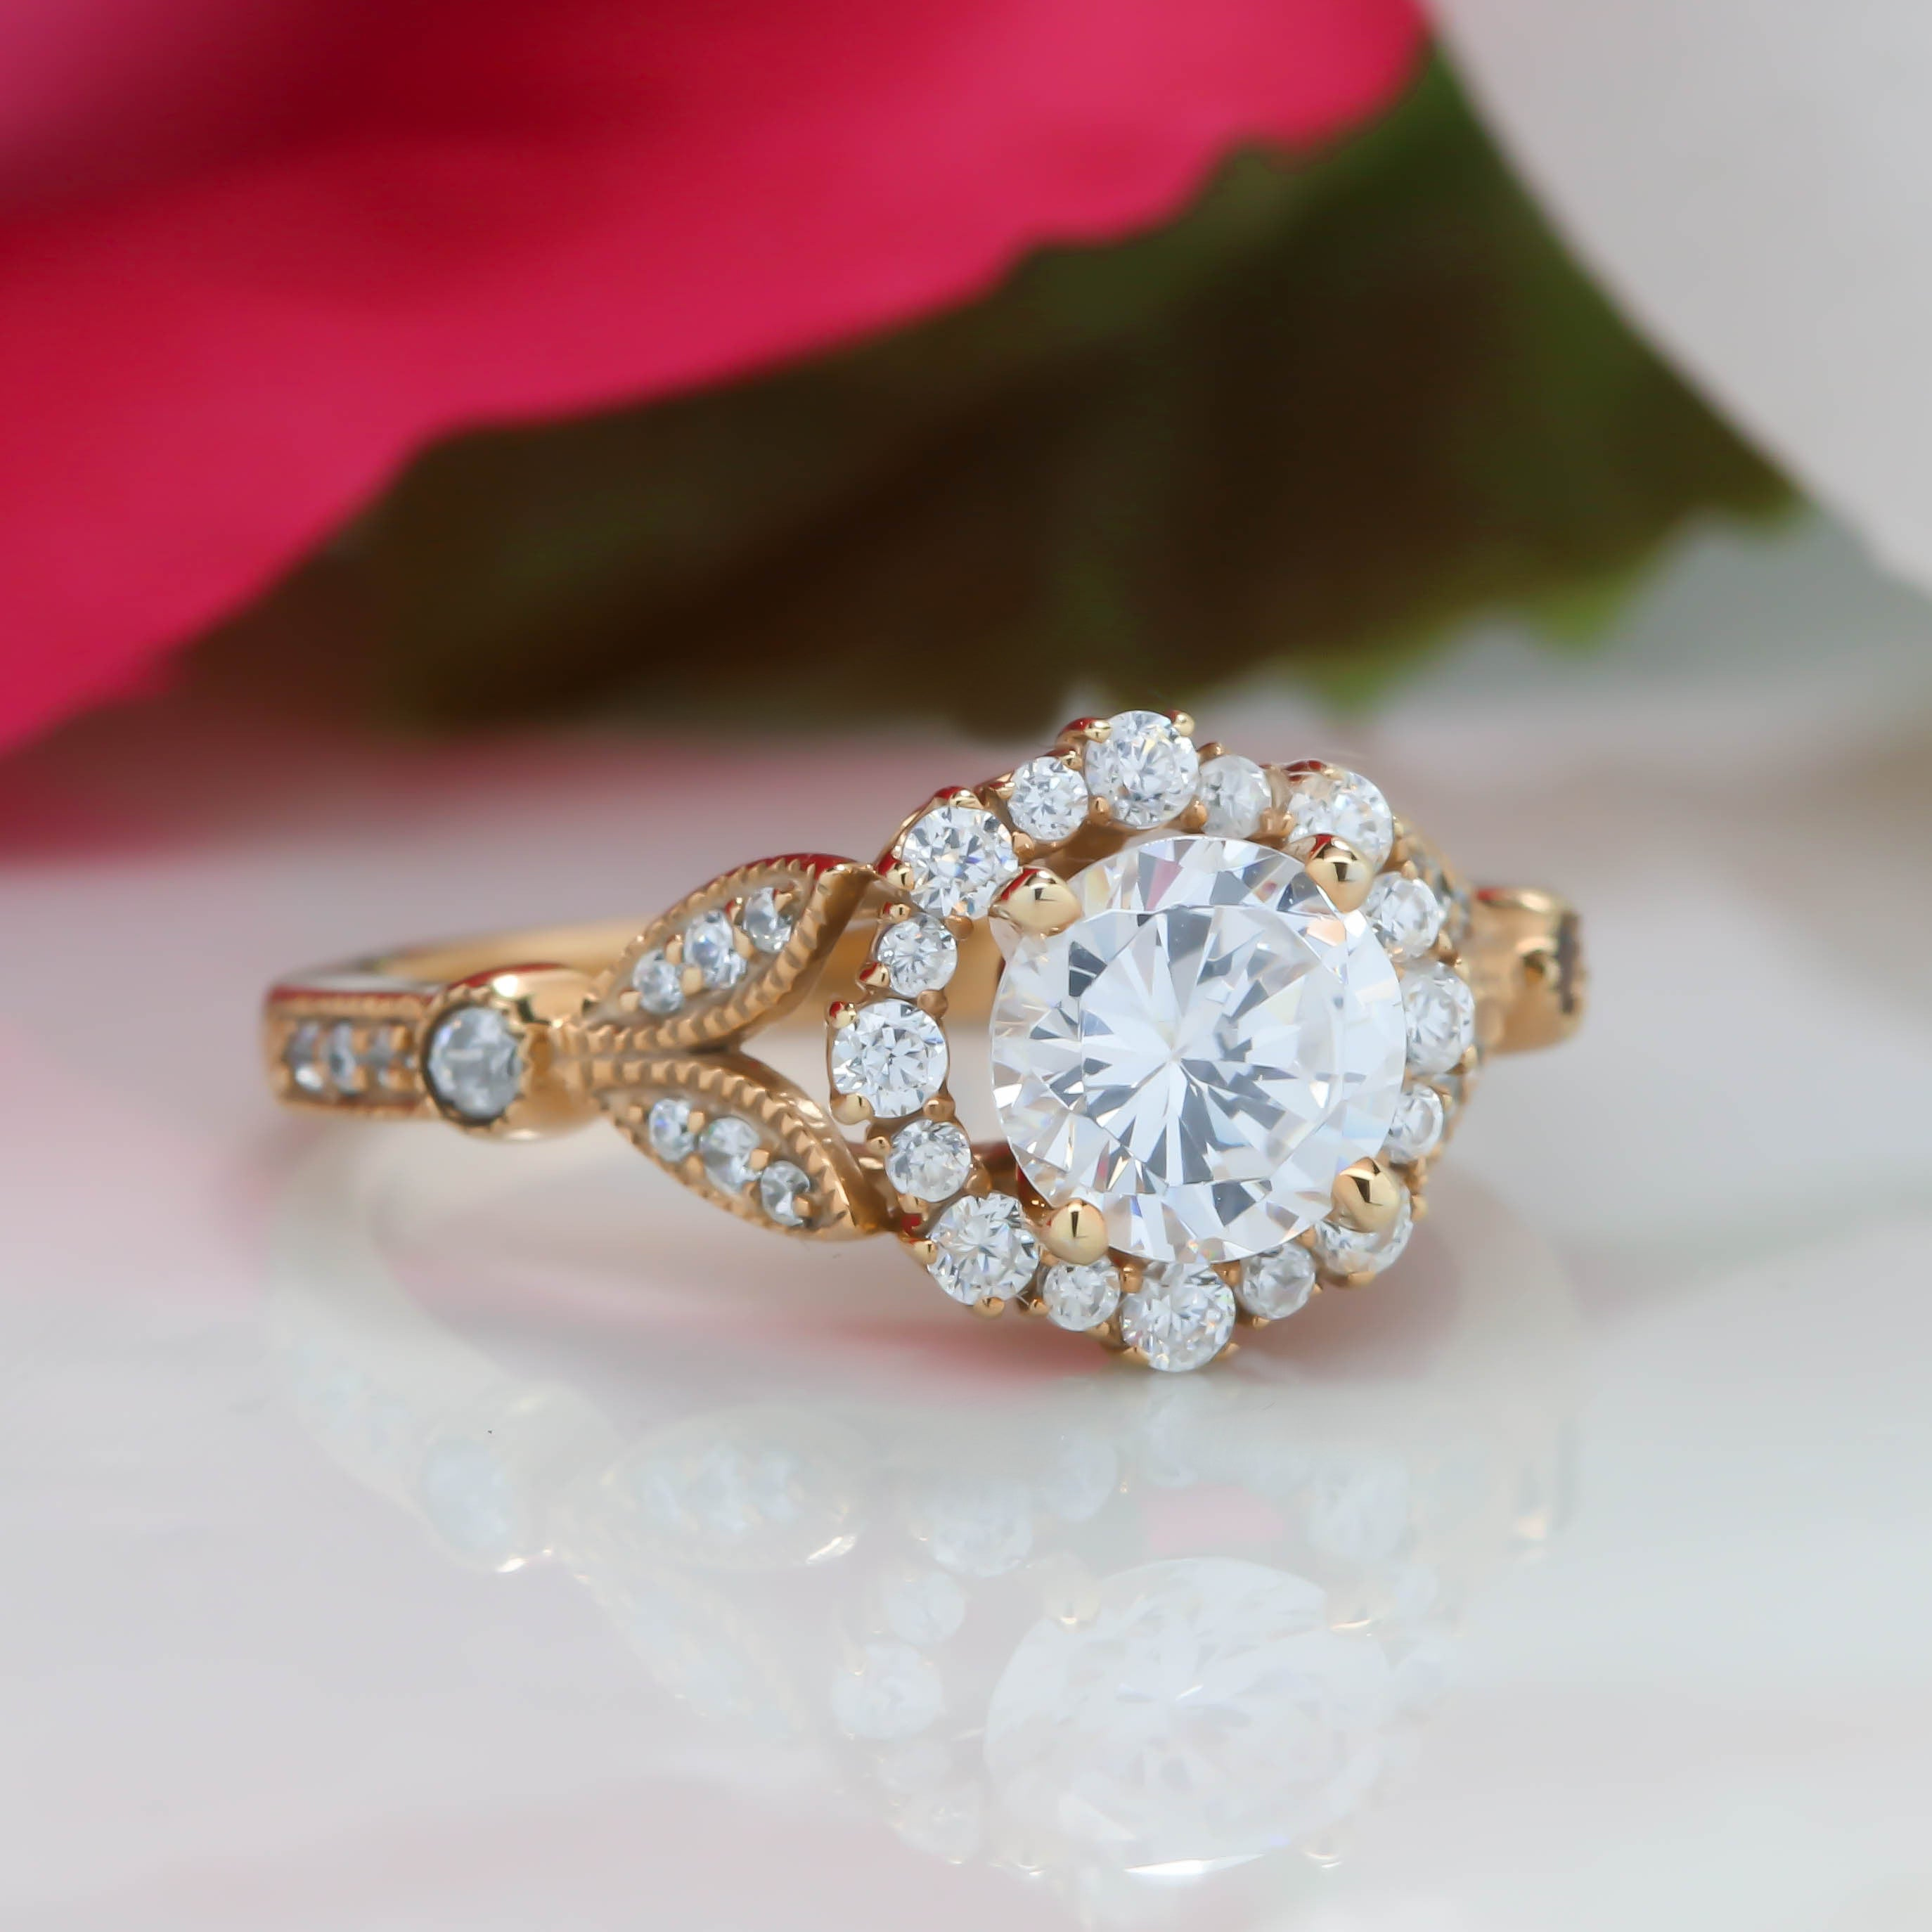 Vintage Floral Style Halo Diamond and Moissanite Engagement Ring - Lilly